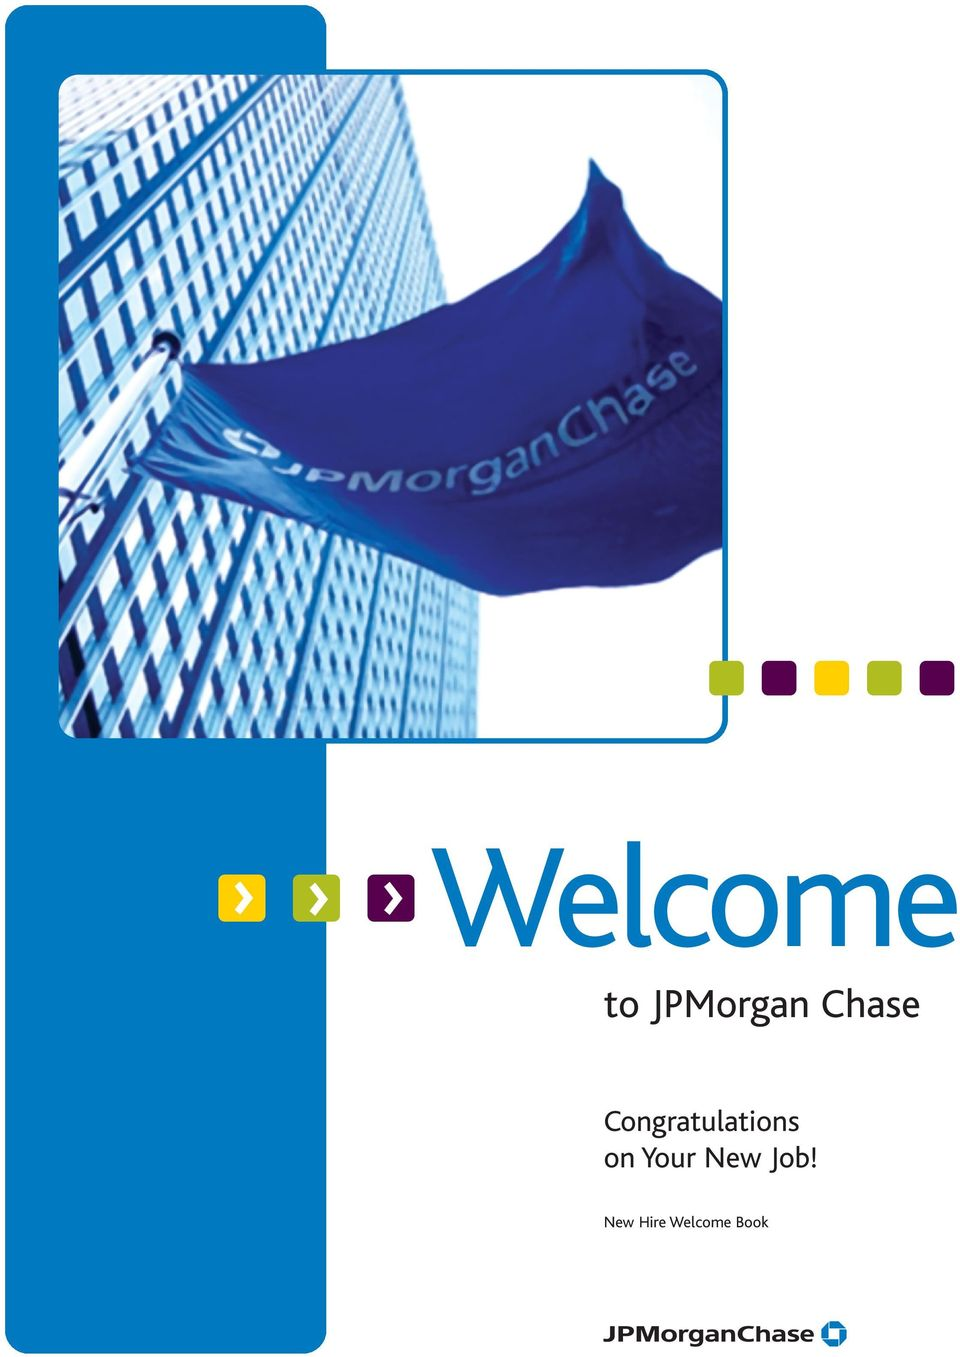 Welcome > > > to JPMorgan Chase  Congratulations on Your New